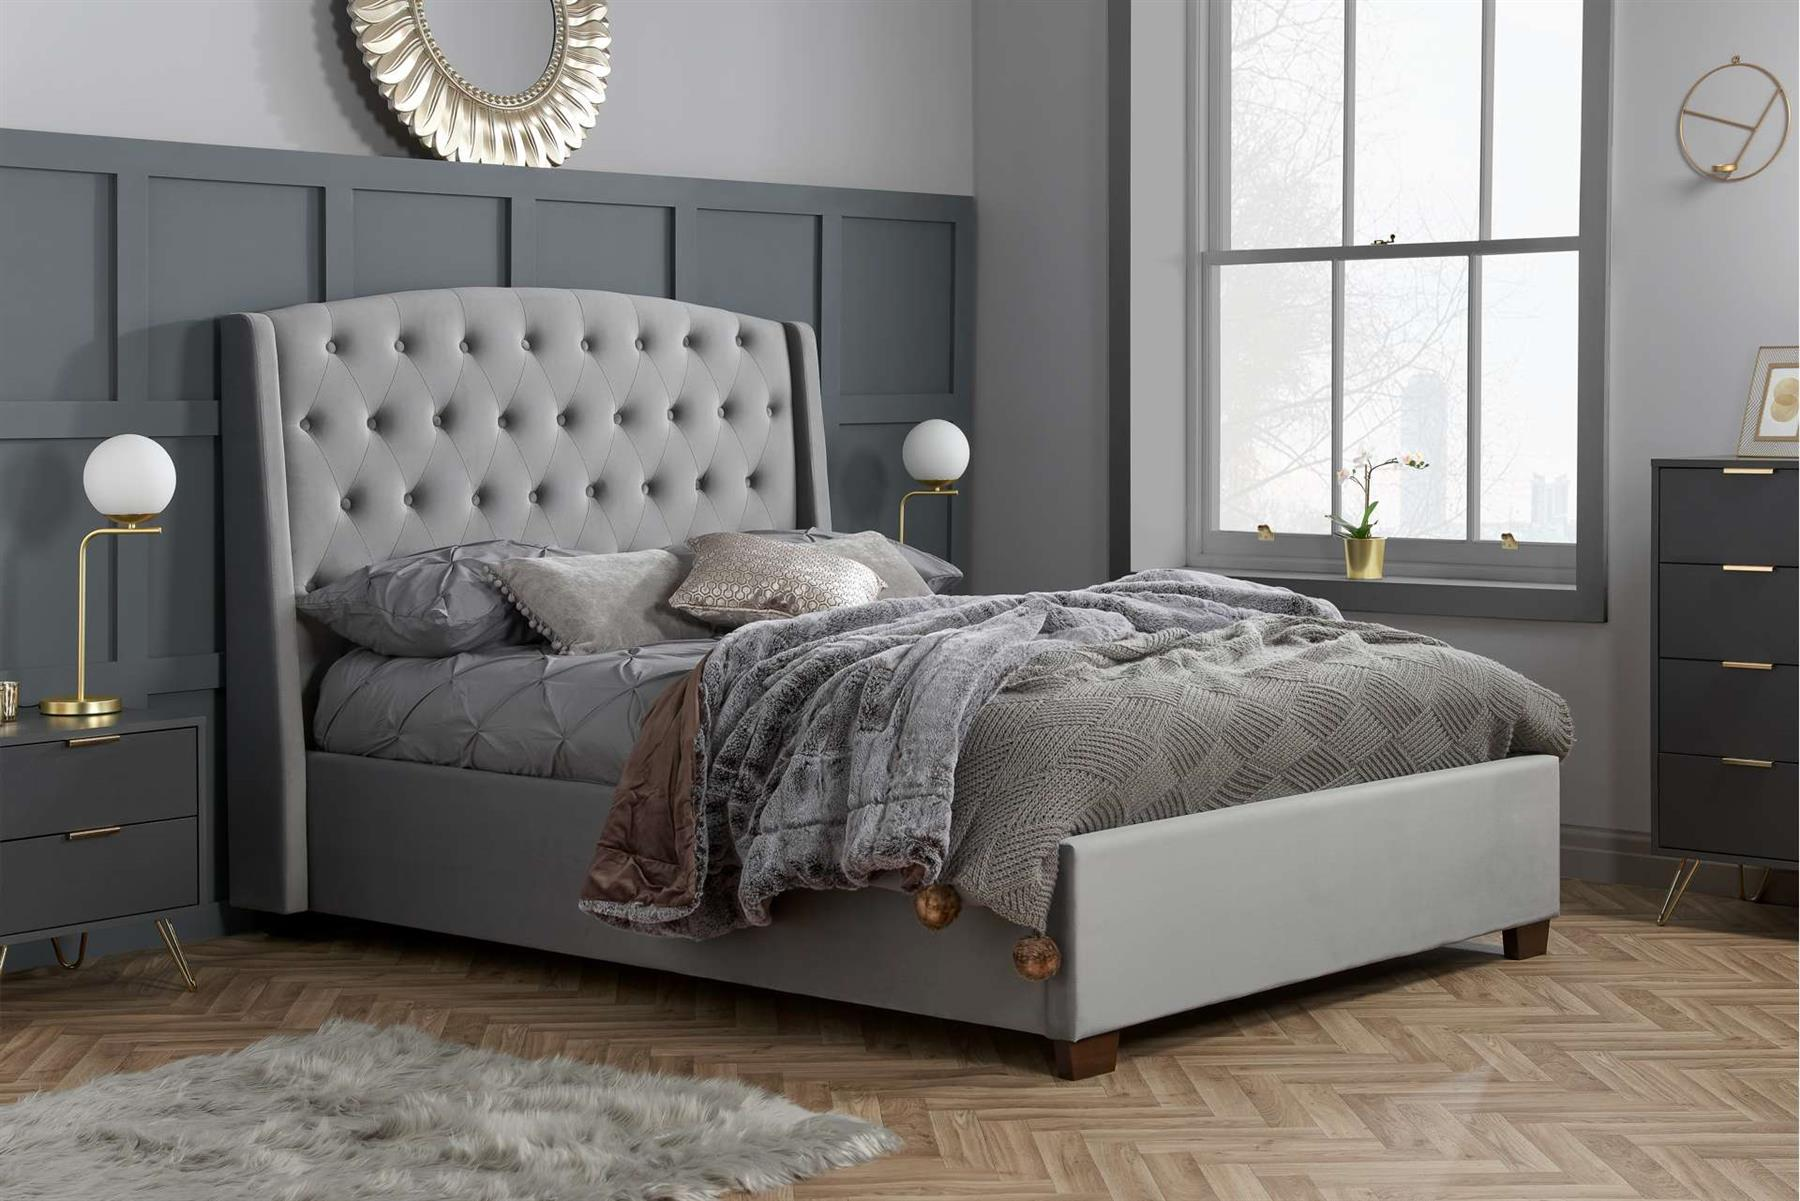 Birlea Balmoral Wing Back King Size Bed Frame 5FT 150cm Grey Velvet Fabric